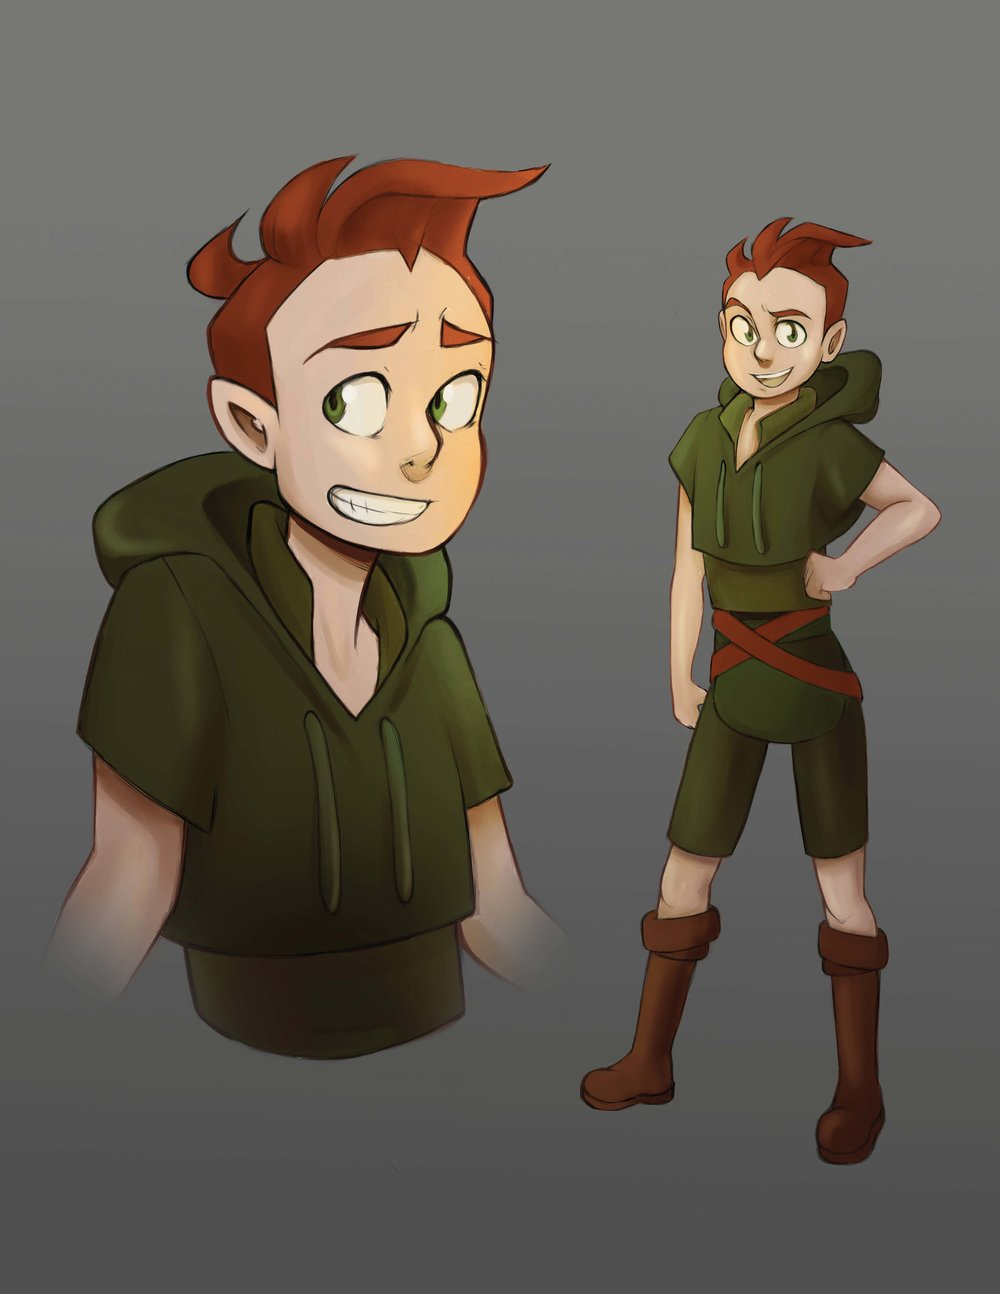 peter pan bust and body.jpg